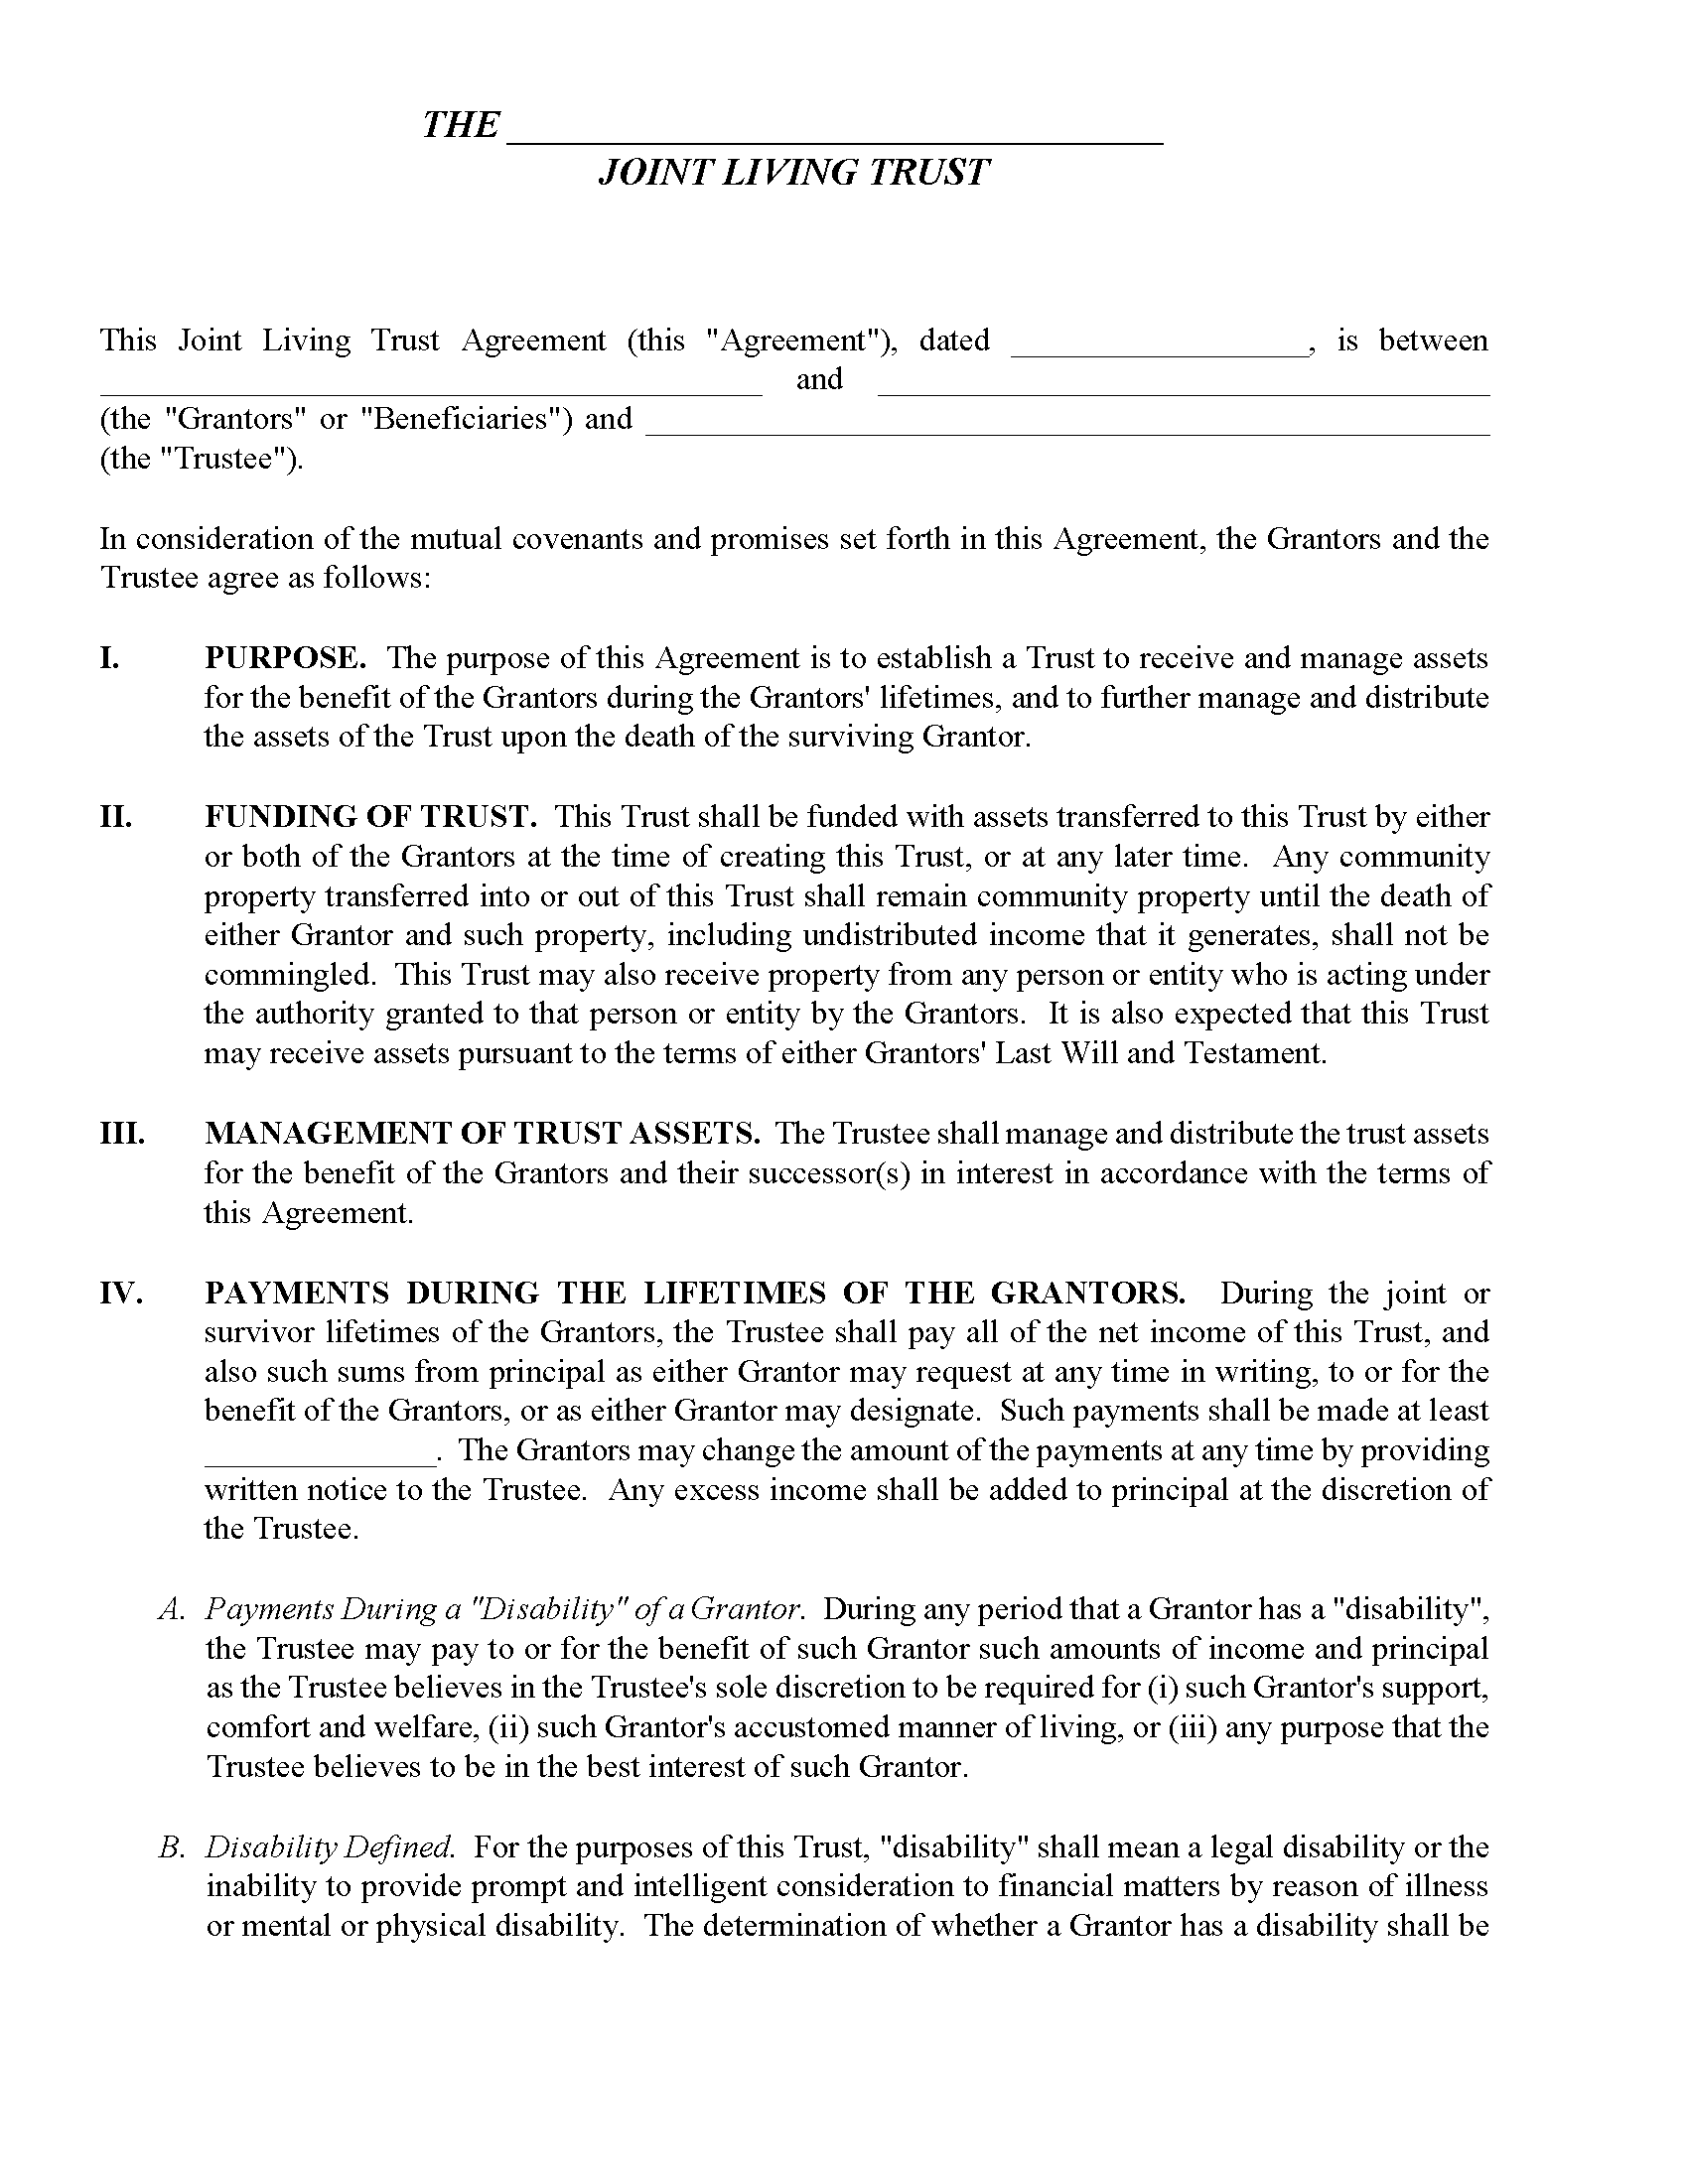 South Carolina Joint Living Trust Form